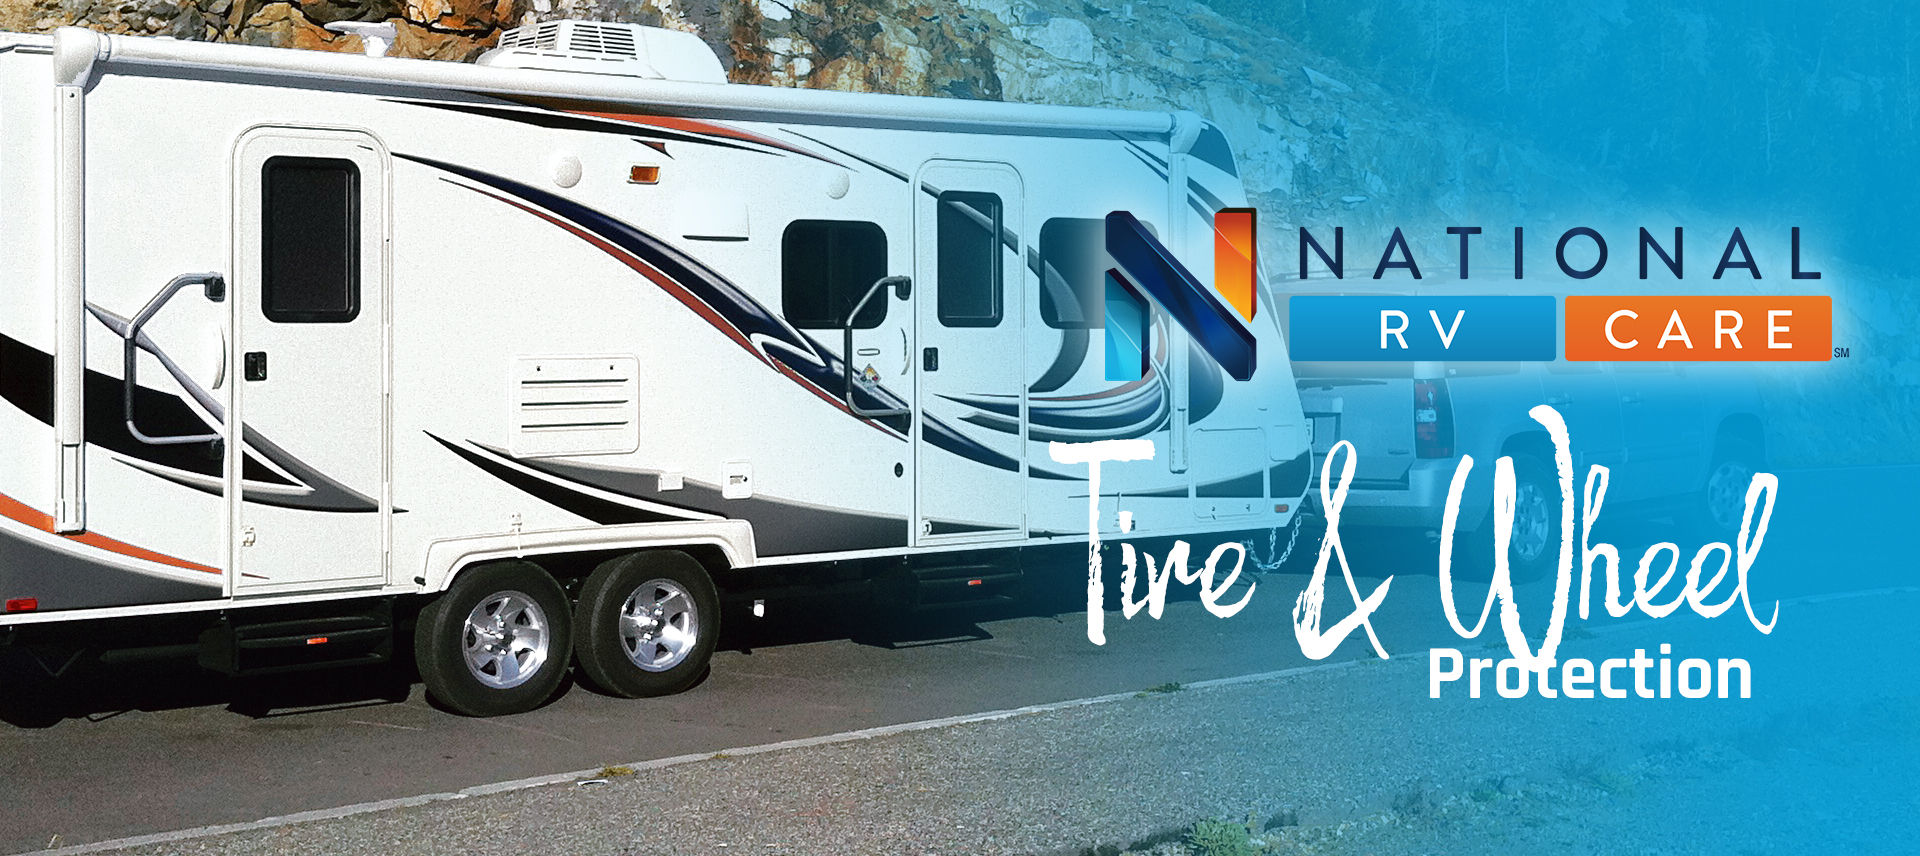 Nationaal RV Care | Tire and Wheel Protection | Travelcamp